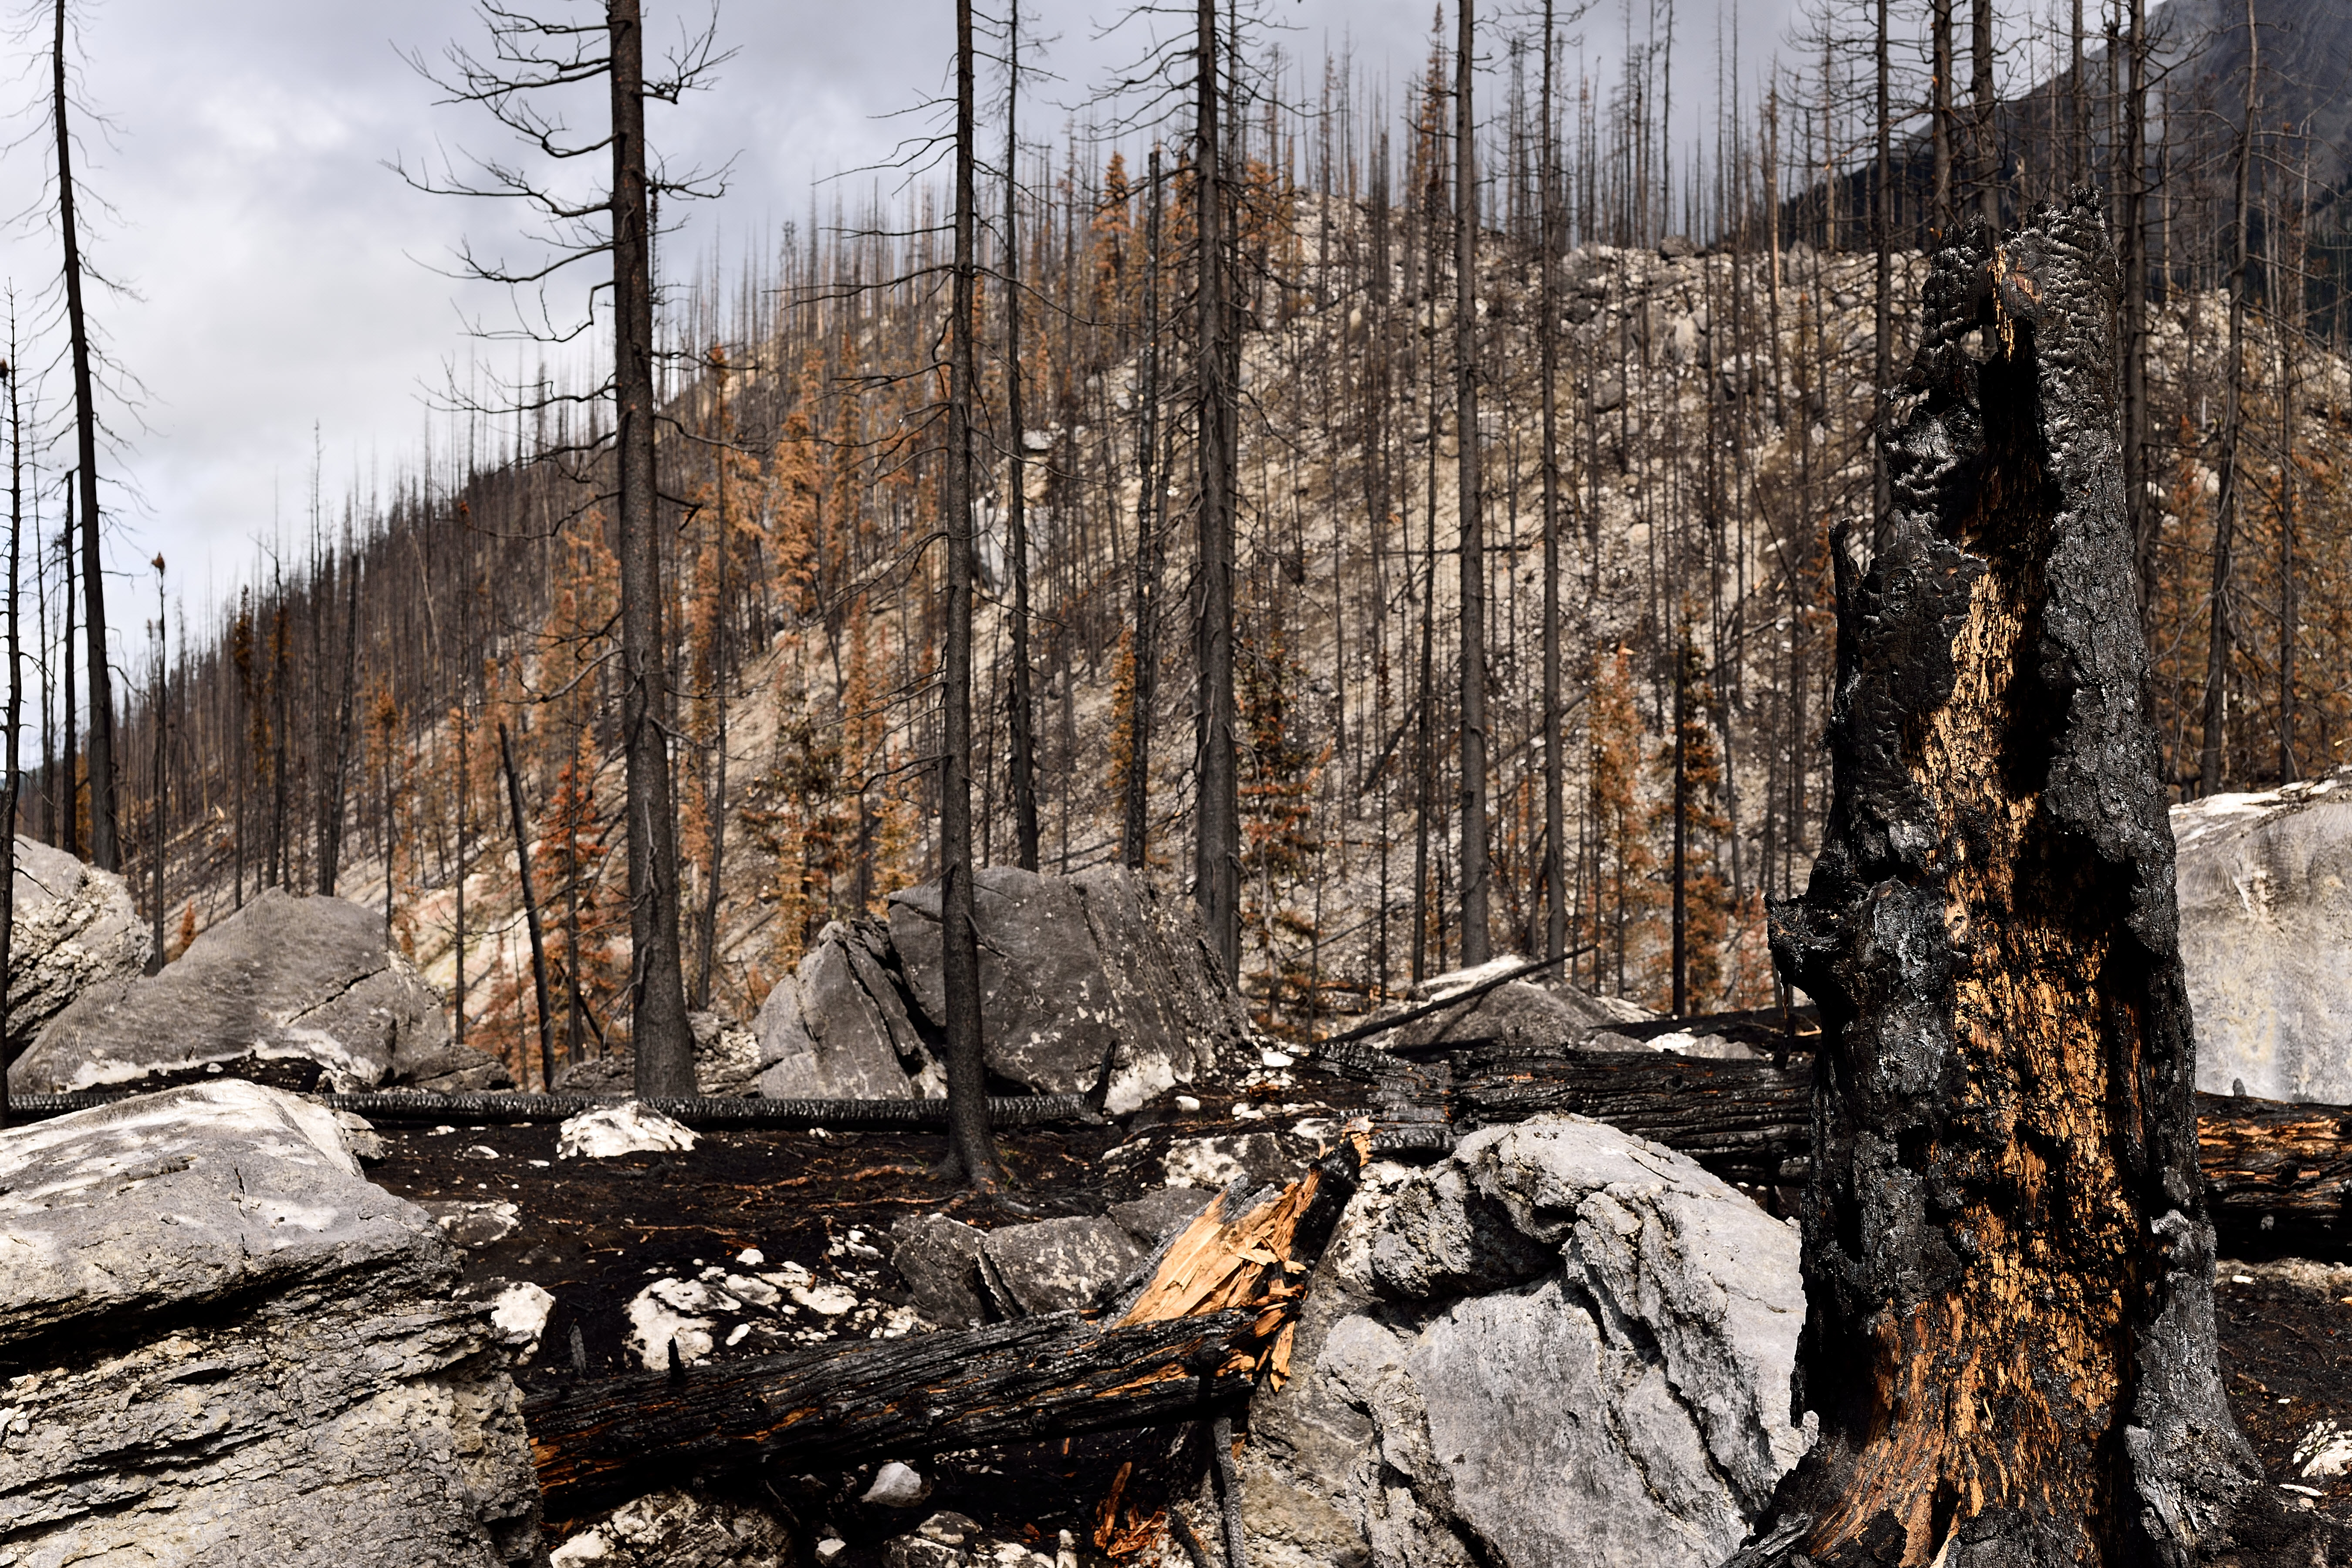 Hazards Of Working Near Burnt Trees After Wildfires